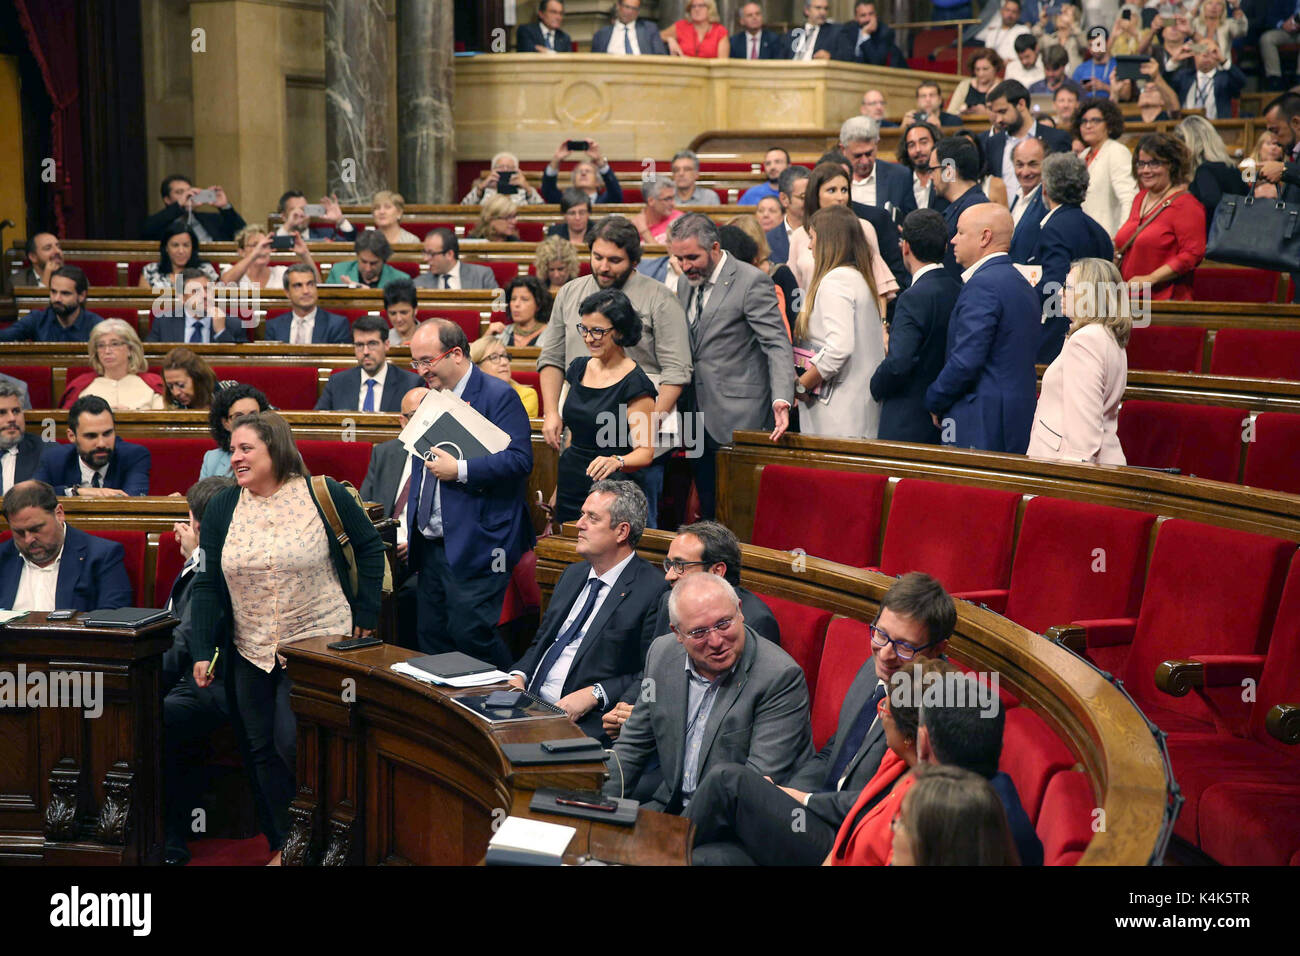 The deputies of Ciudadanos, PSC and PPC leave the Parliament to not vote the Referendum Law, in Barcelona, Catalonia, - Stock Image